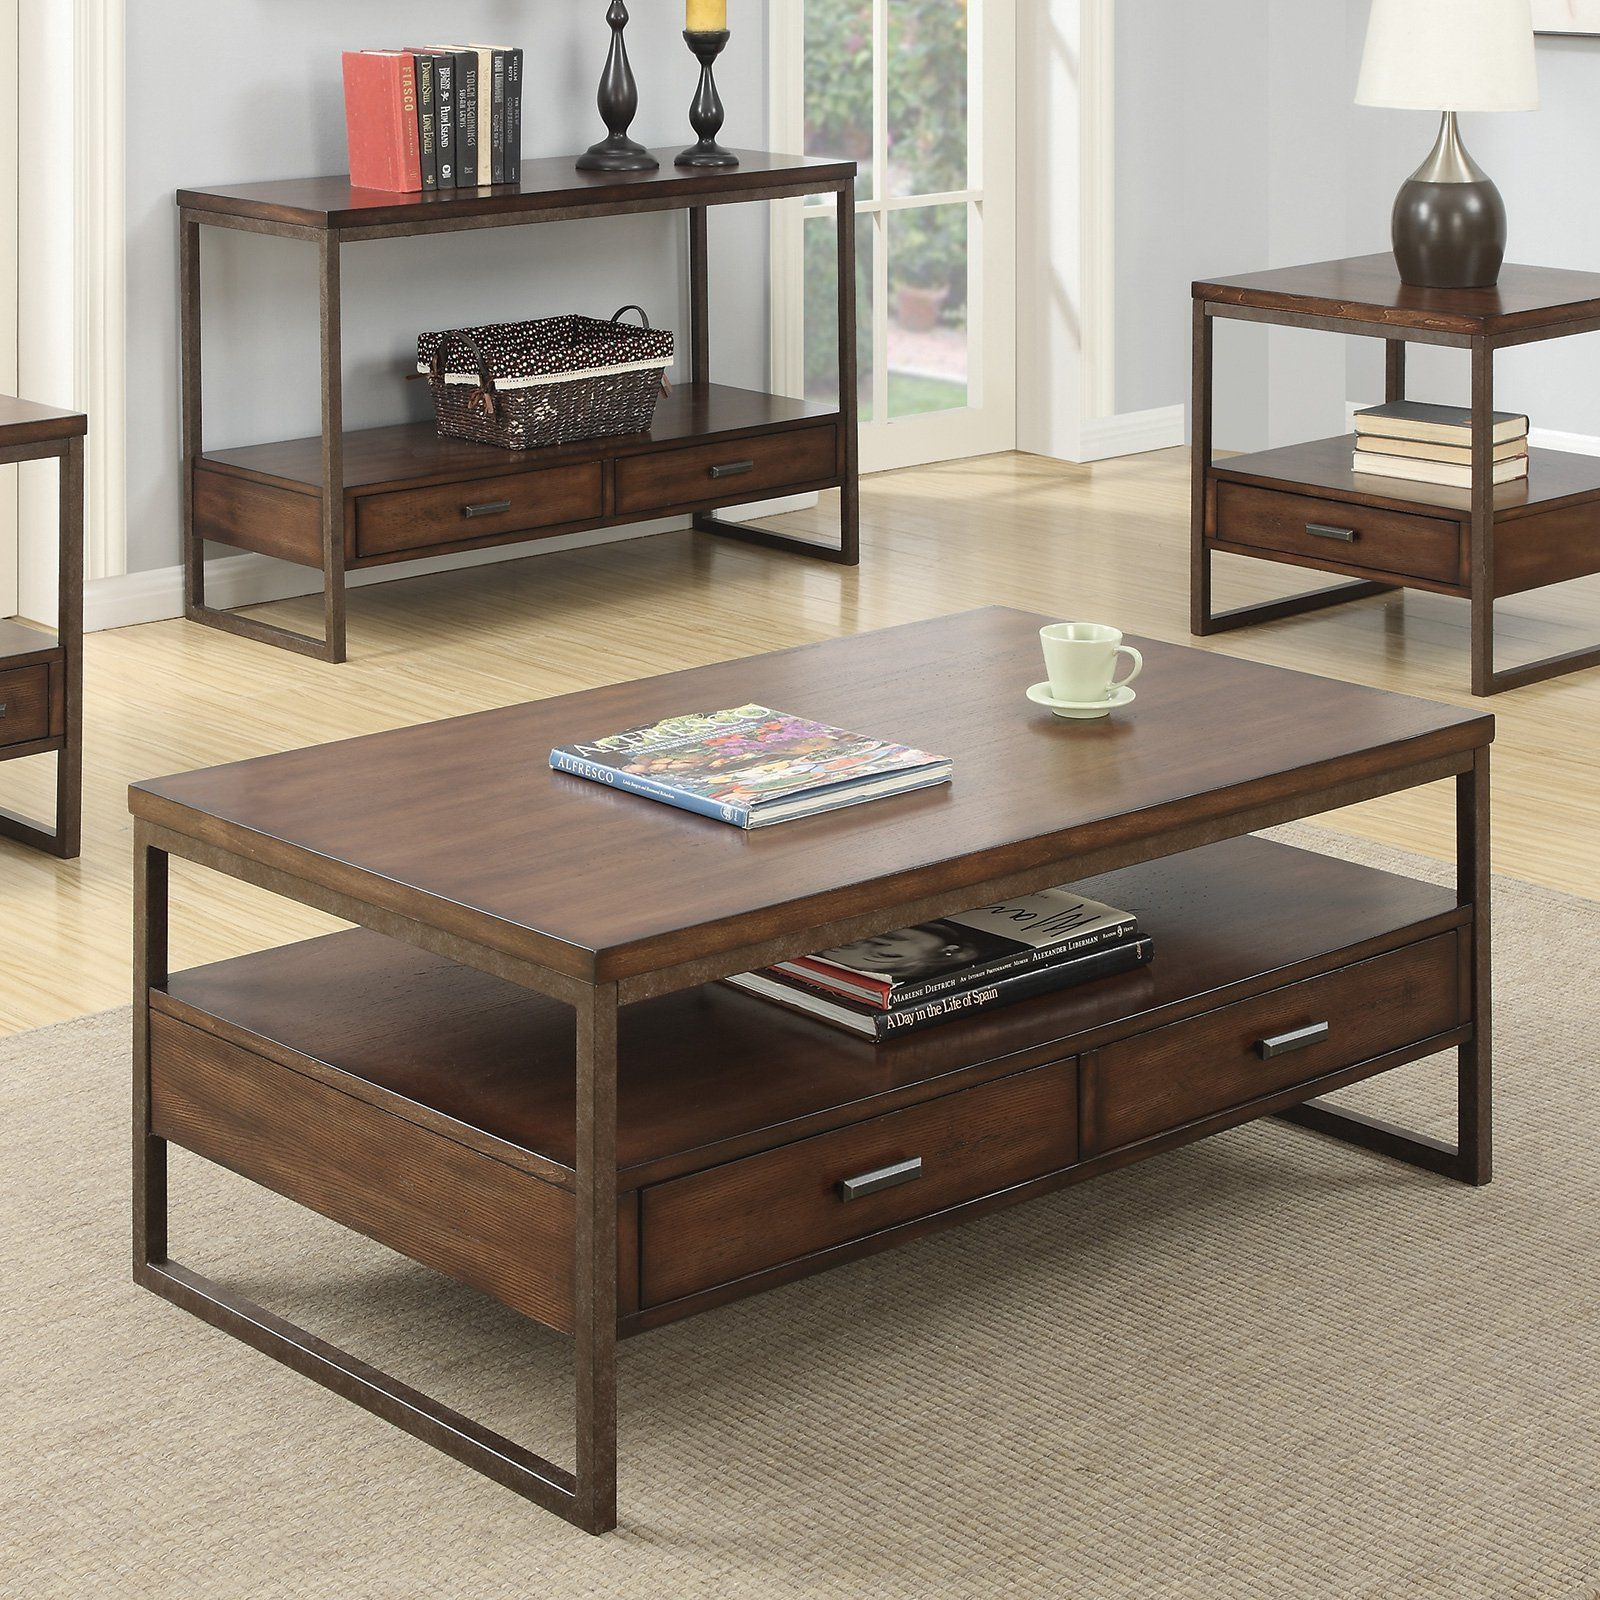 Coaster Furniture Wood Coffee Table With 2 Drawers From Hayneedle Com Coffee Table Home Coffee Tables Furniture [ 1600 x 1600 Pixel ]